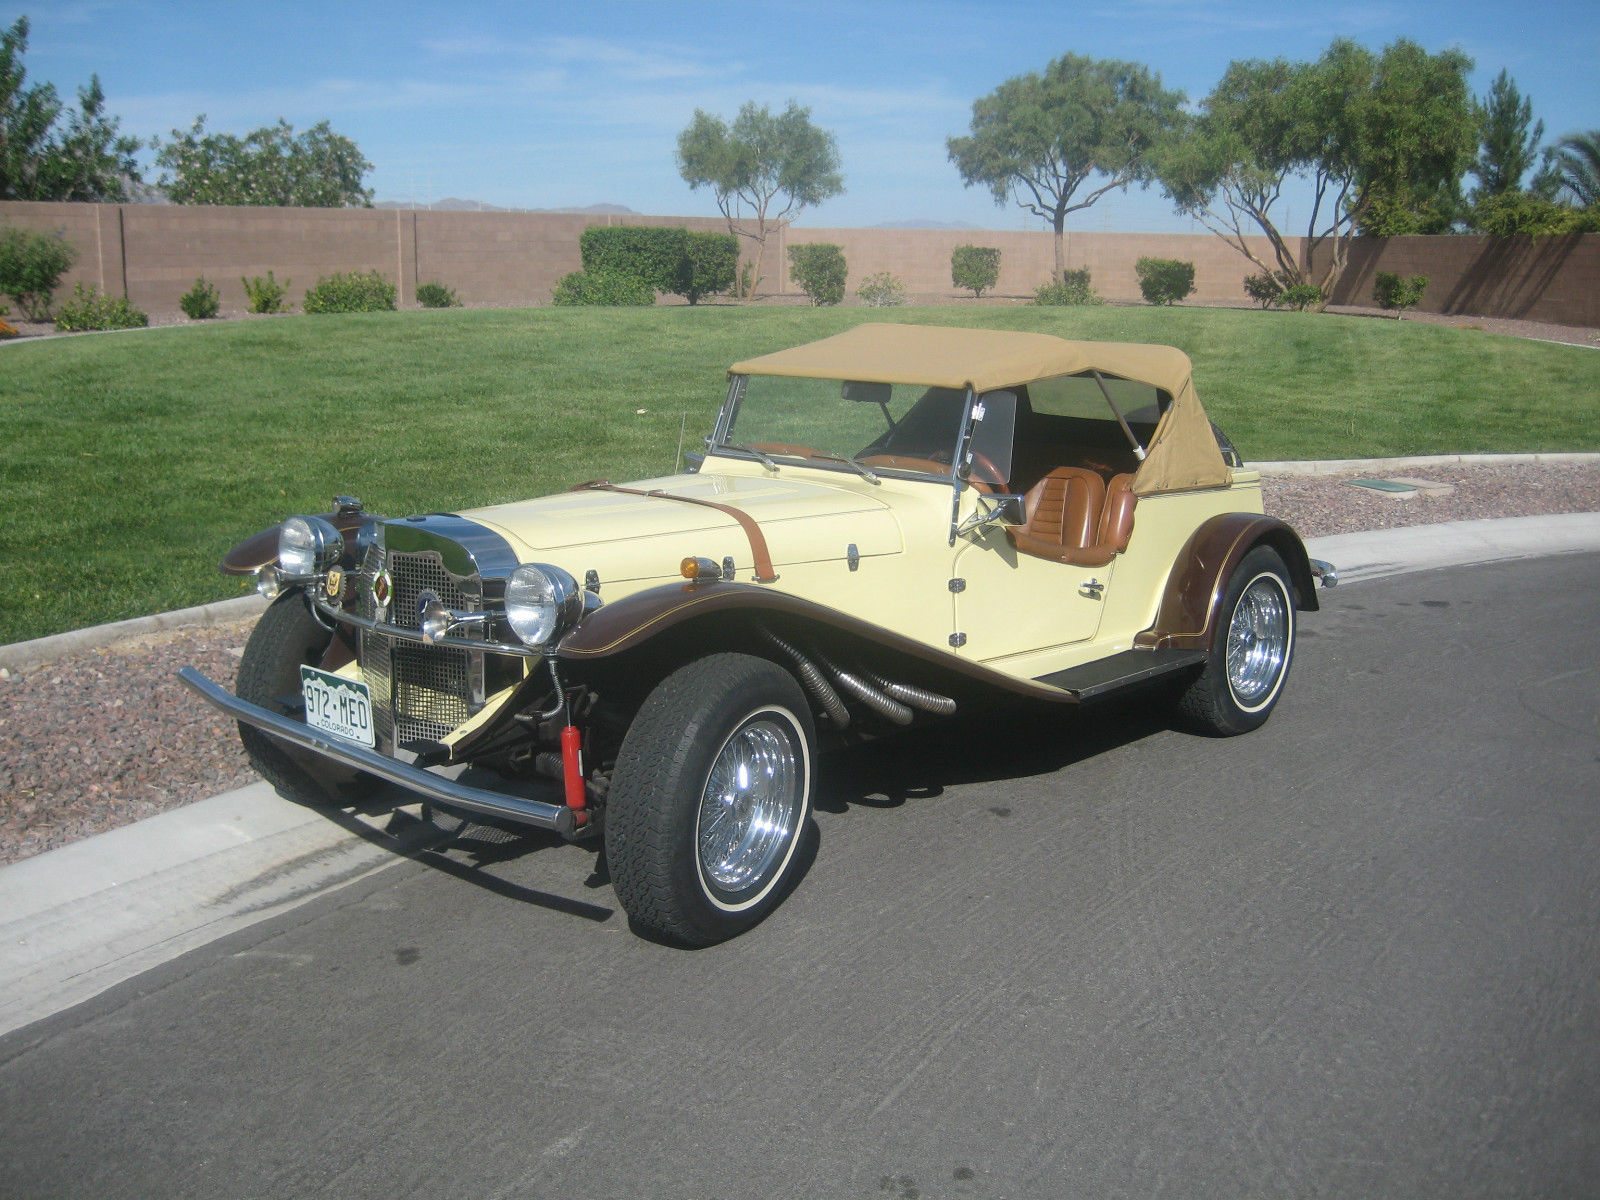 1929 MERCEDES GAZELLE ROADSTER -- REPLICA/KIT CAR*****